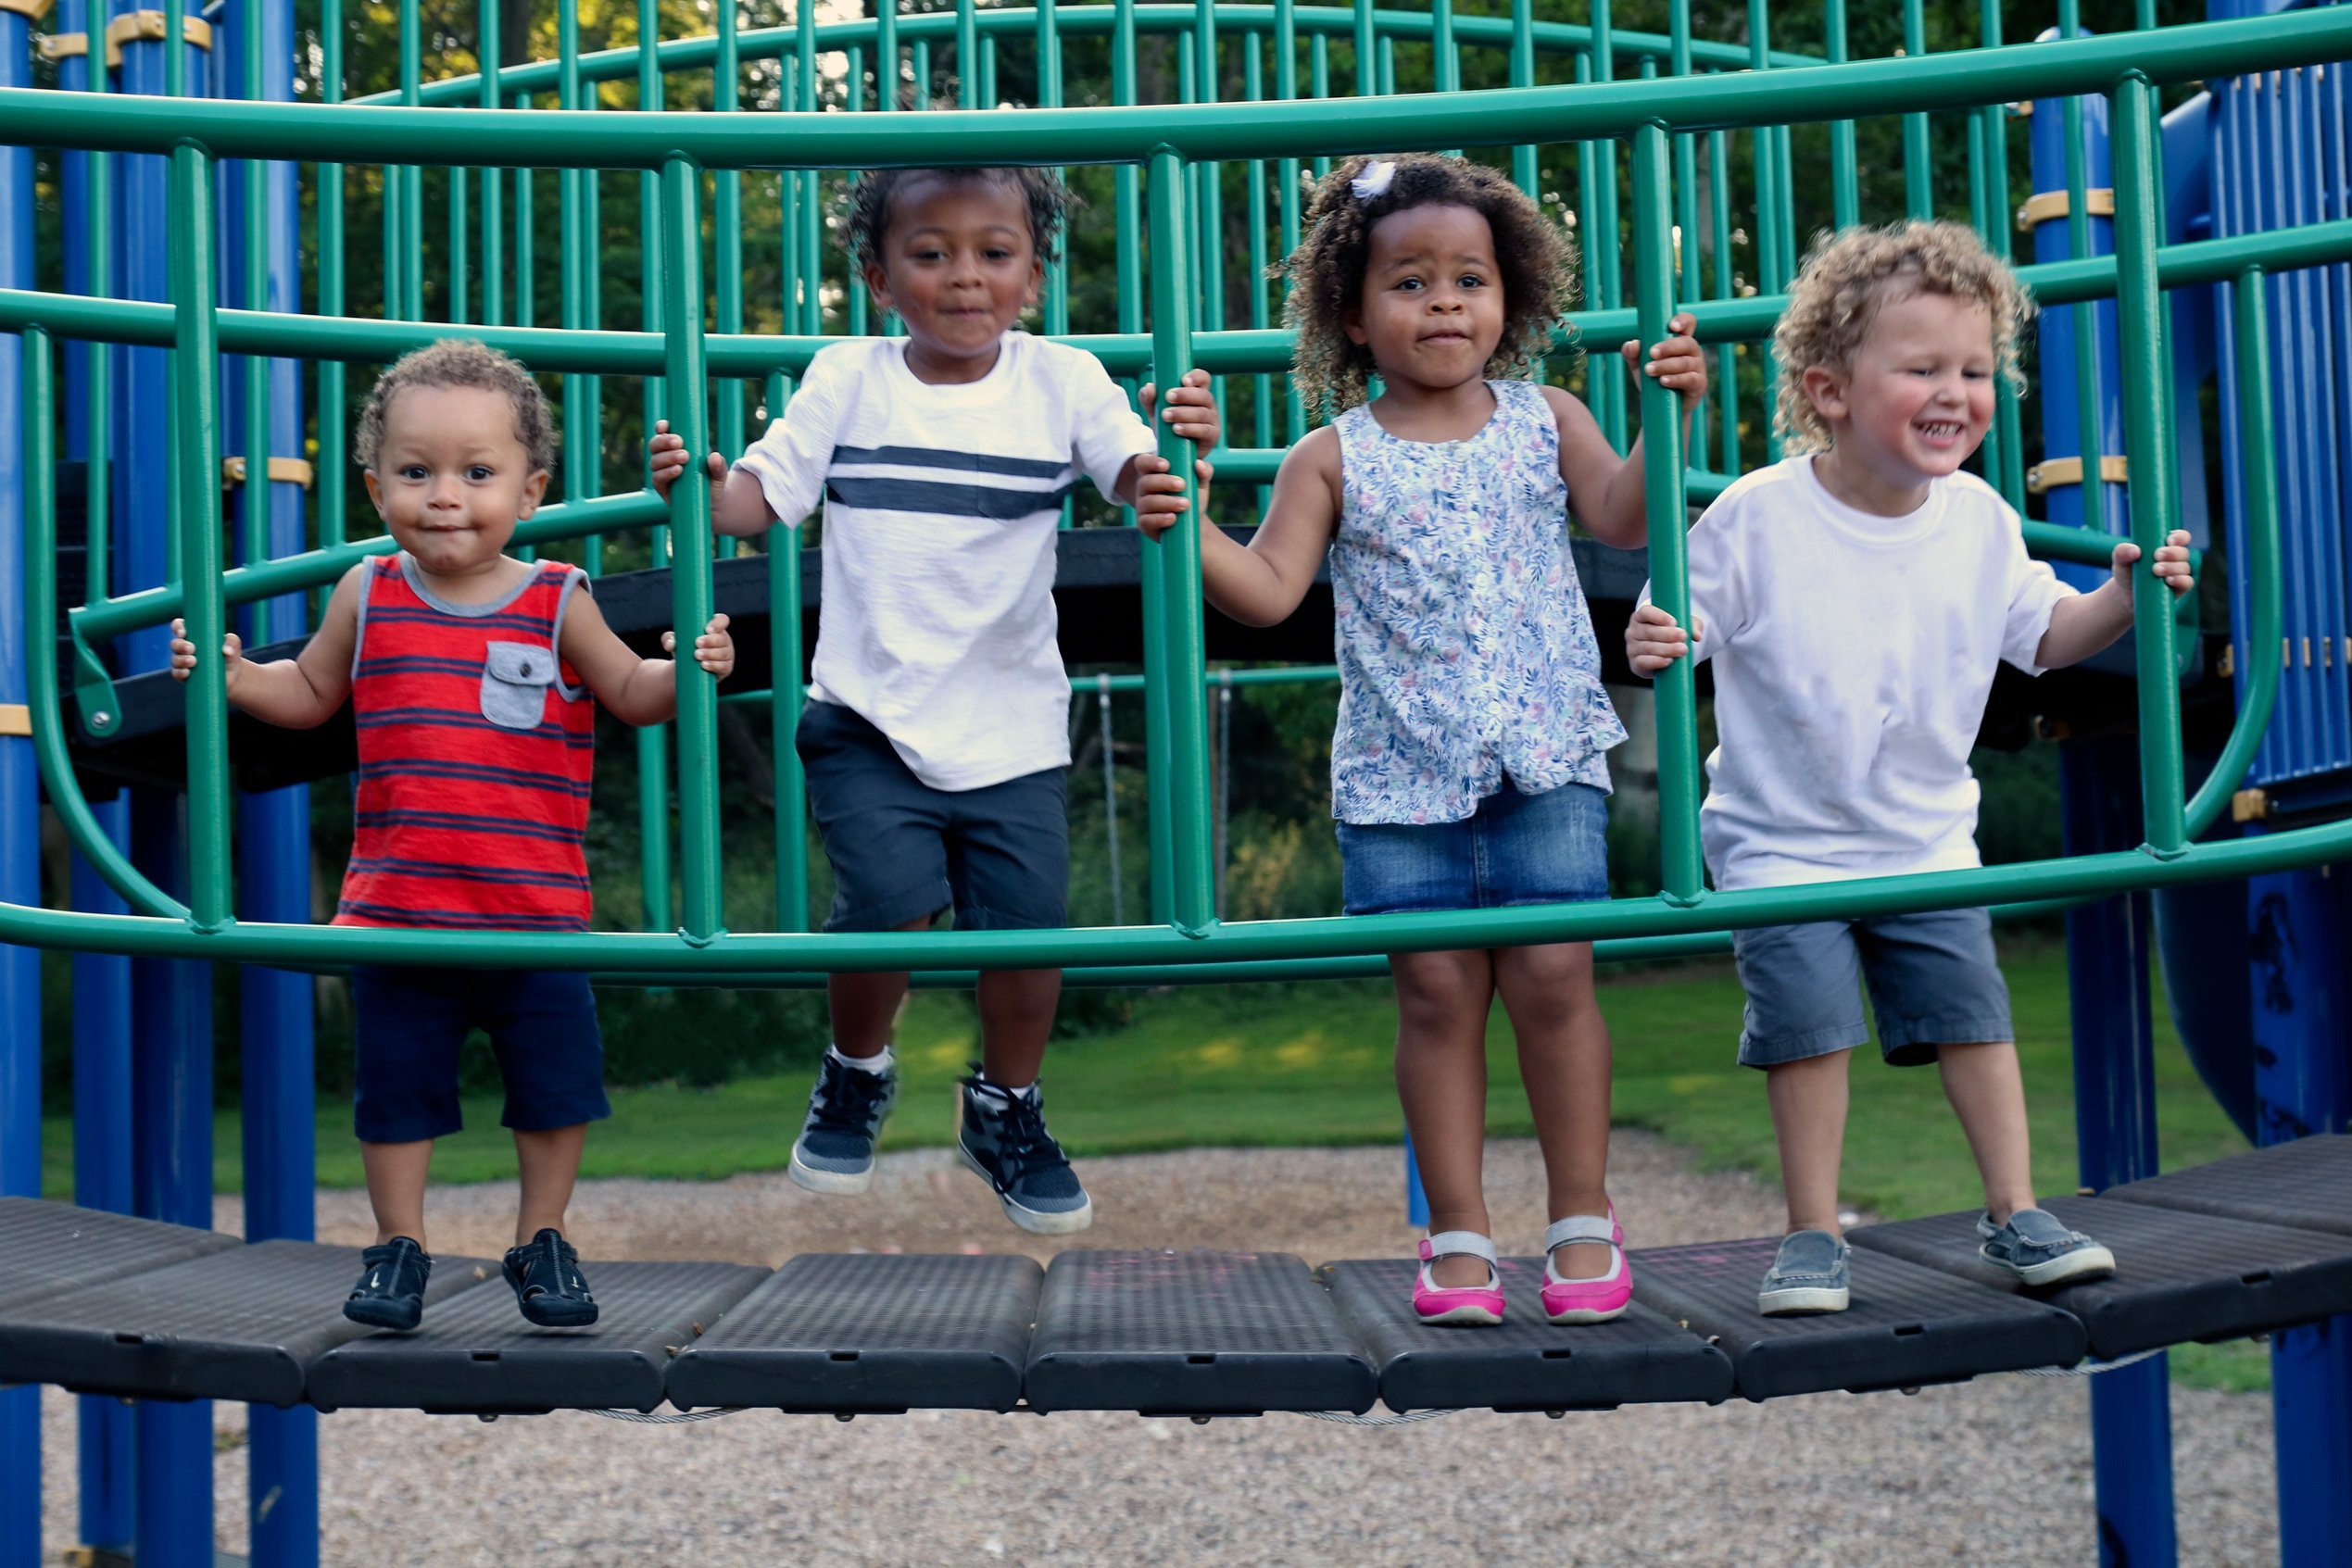 A diverse group of four children are playing together at the park | Photo: Shutterstock.com